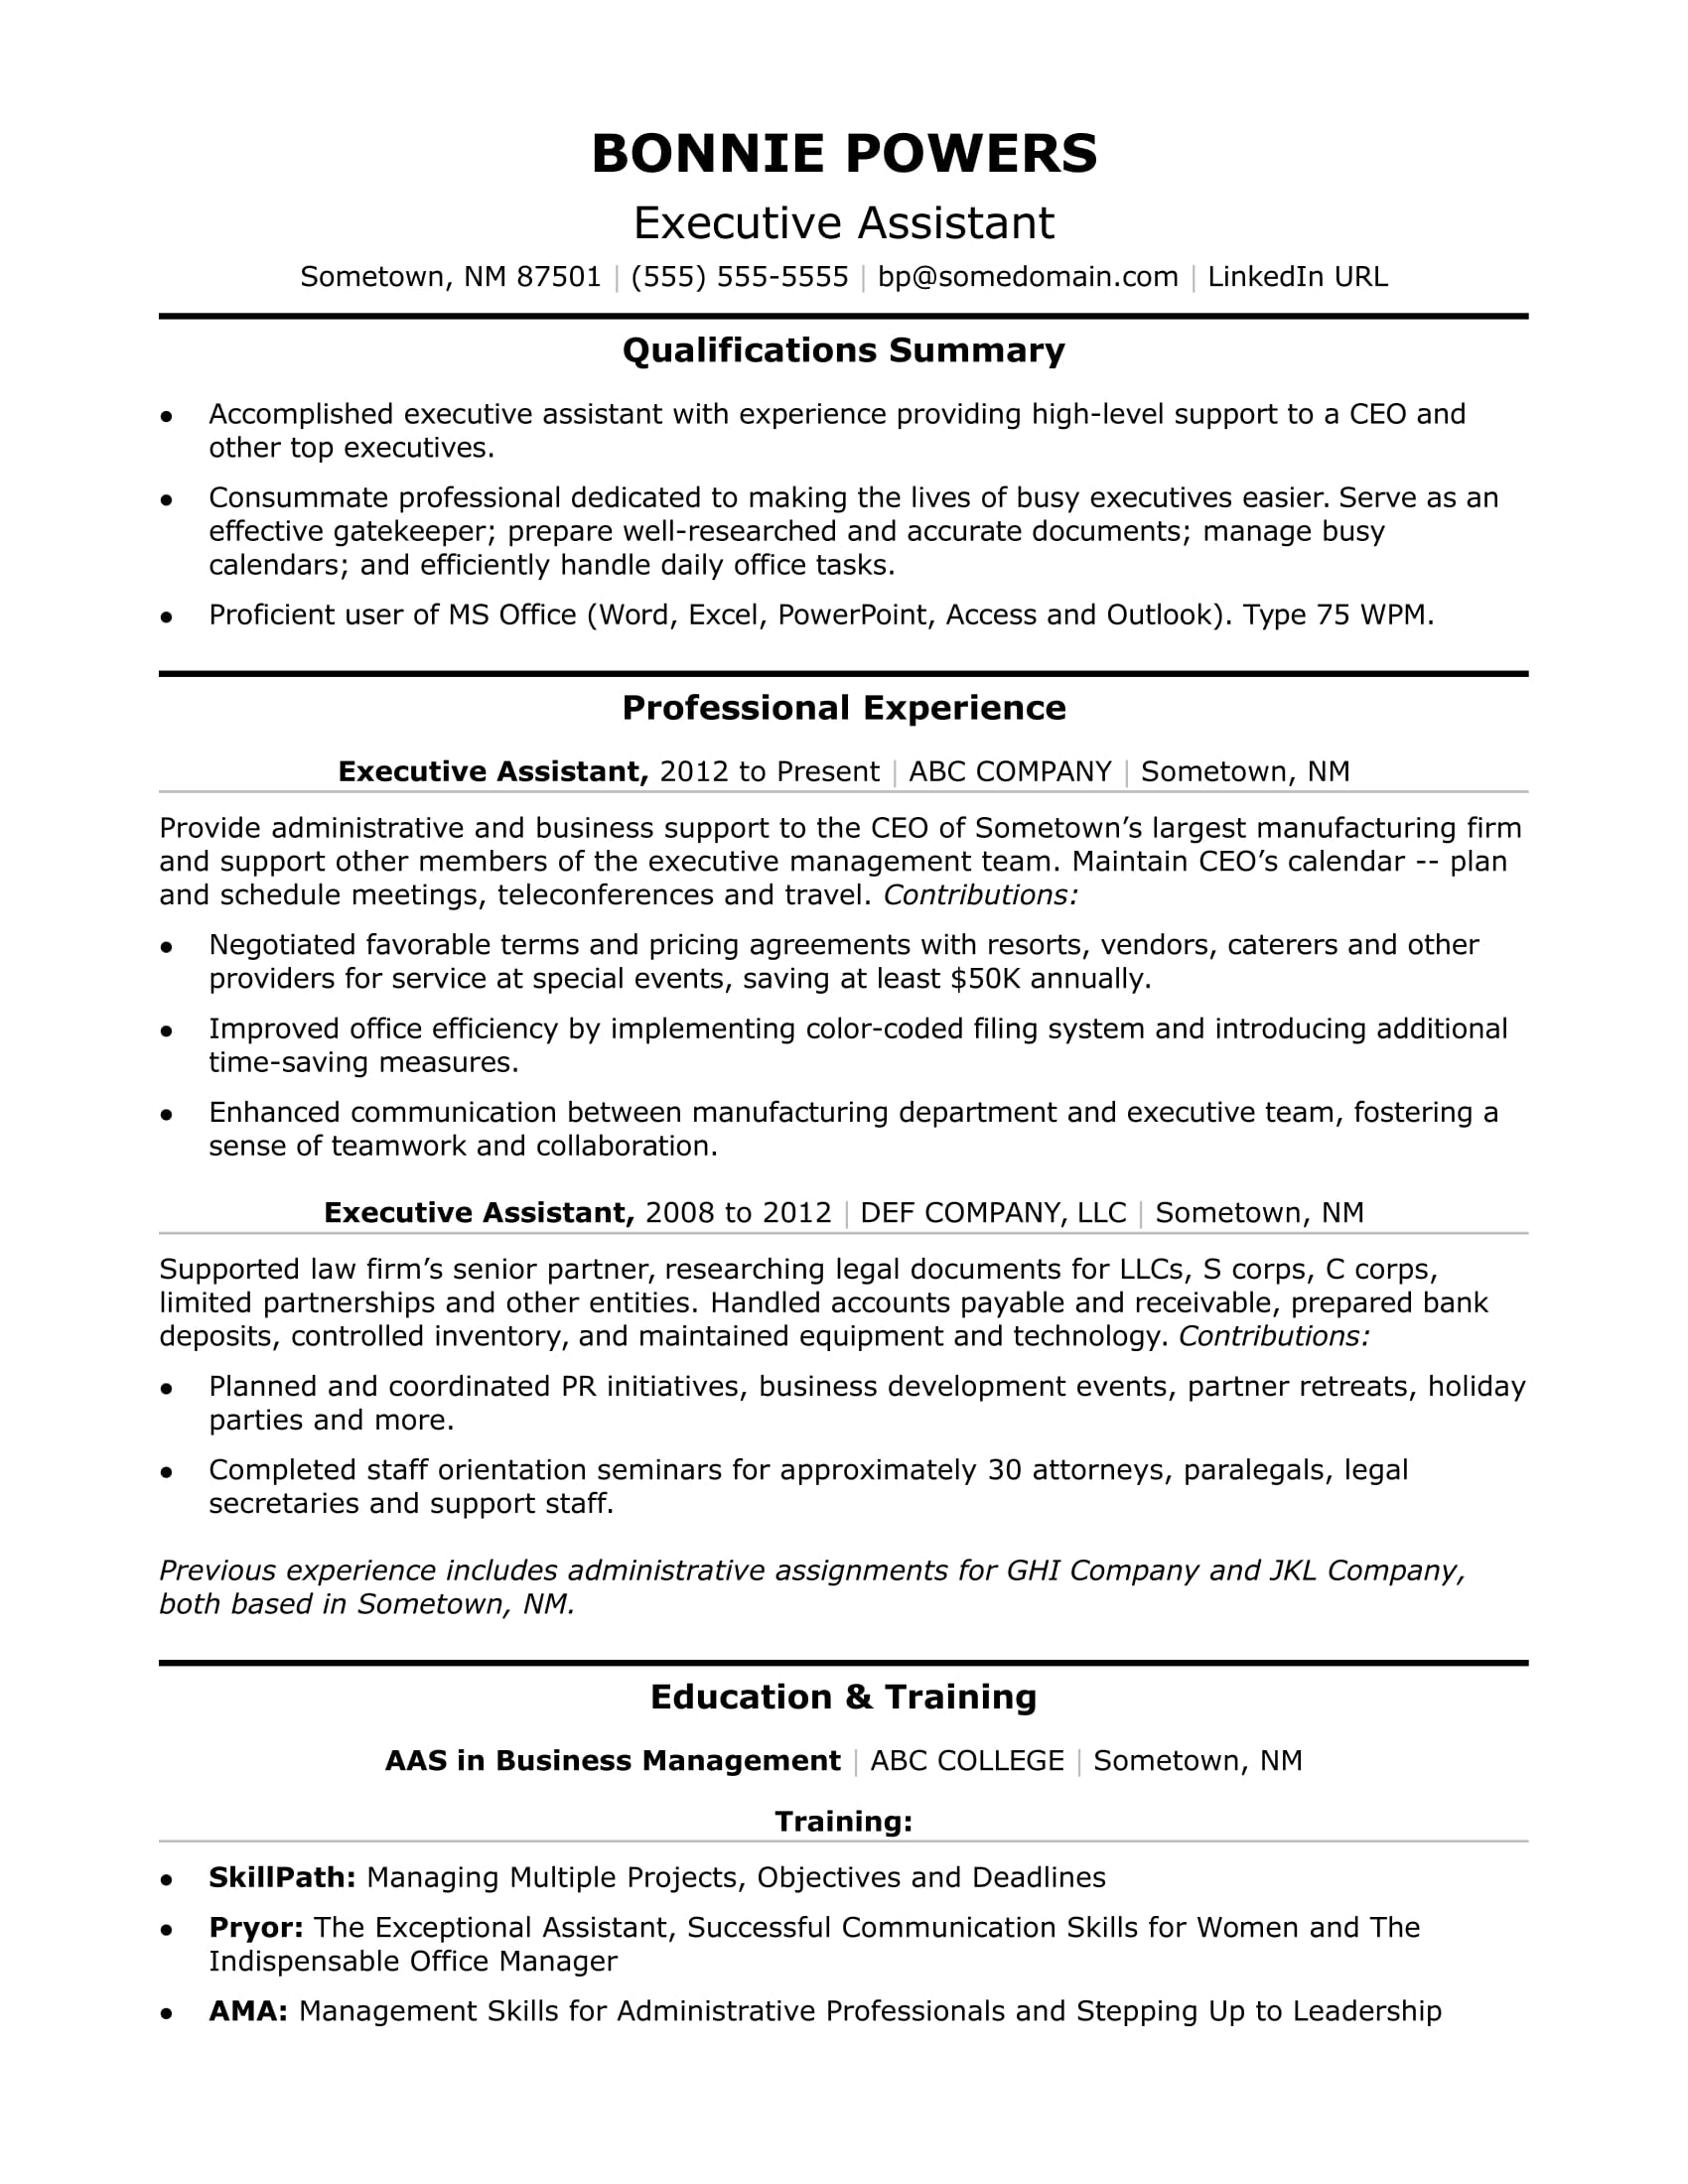 executive administrative assistant resume sample monster for secretary position railway Resume Sample Resume For Executive Secretary Position